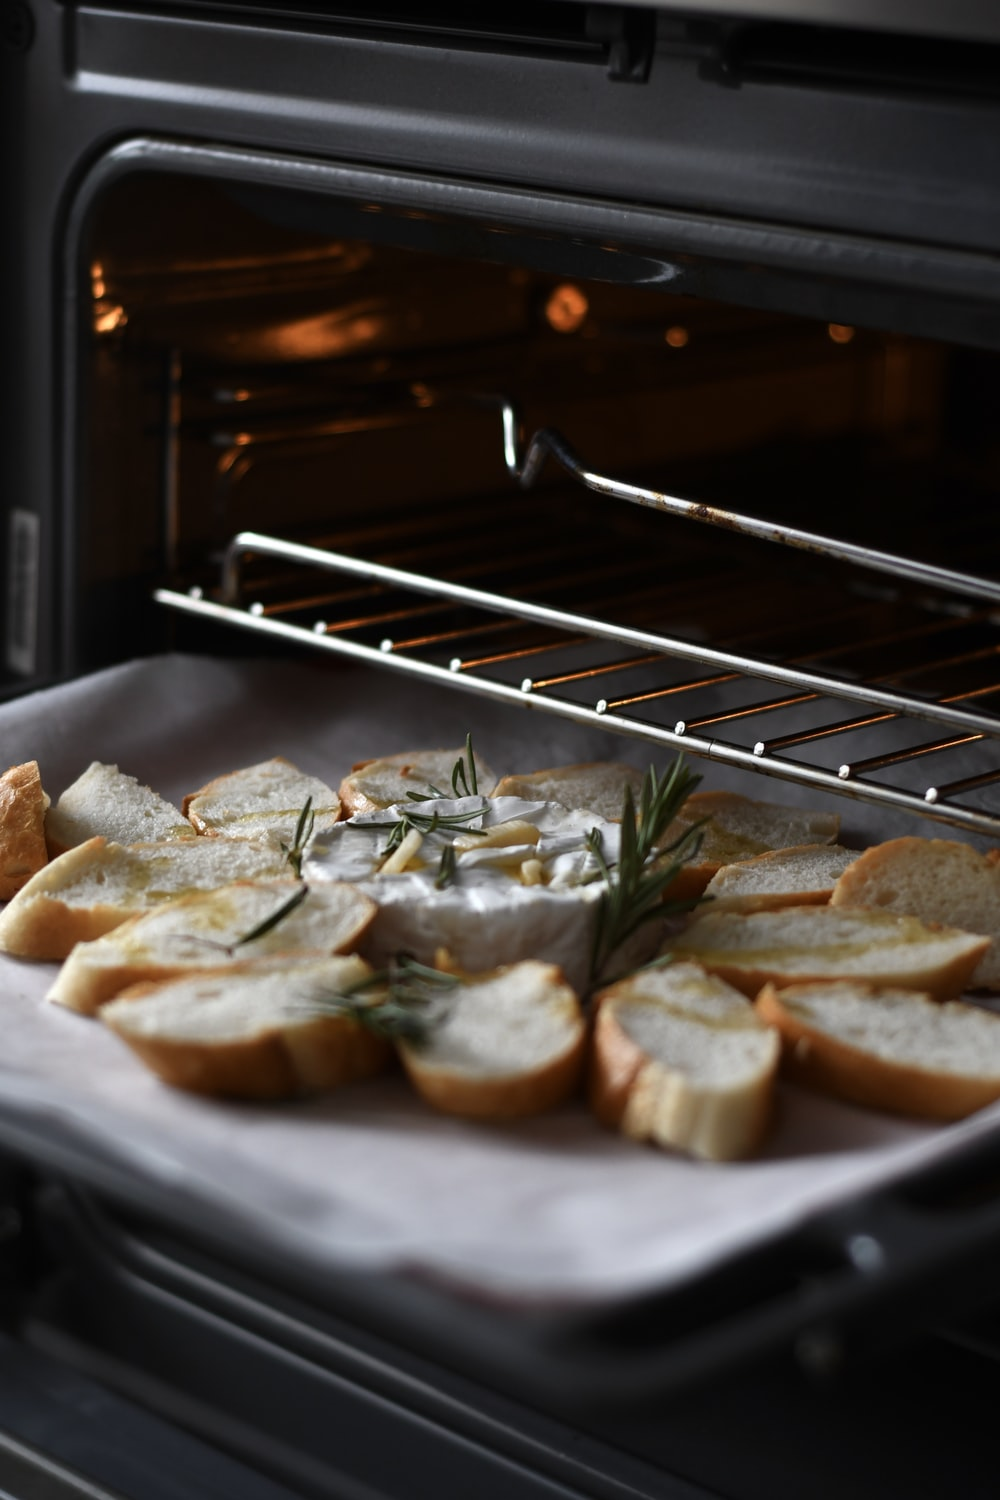 bread on stainless steel tray